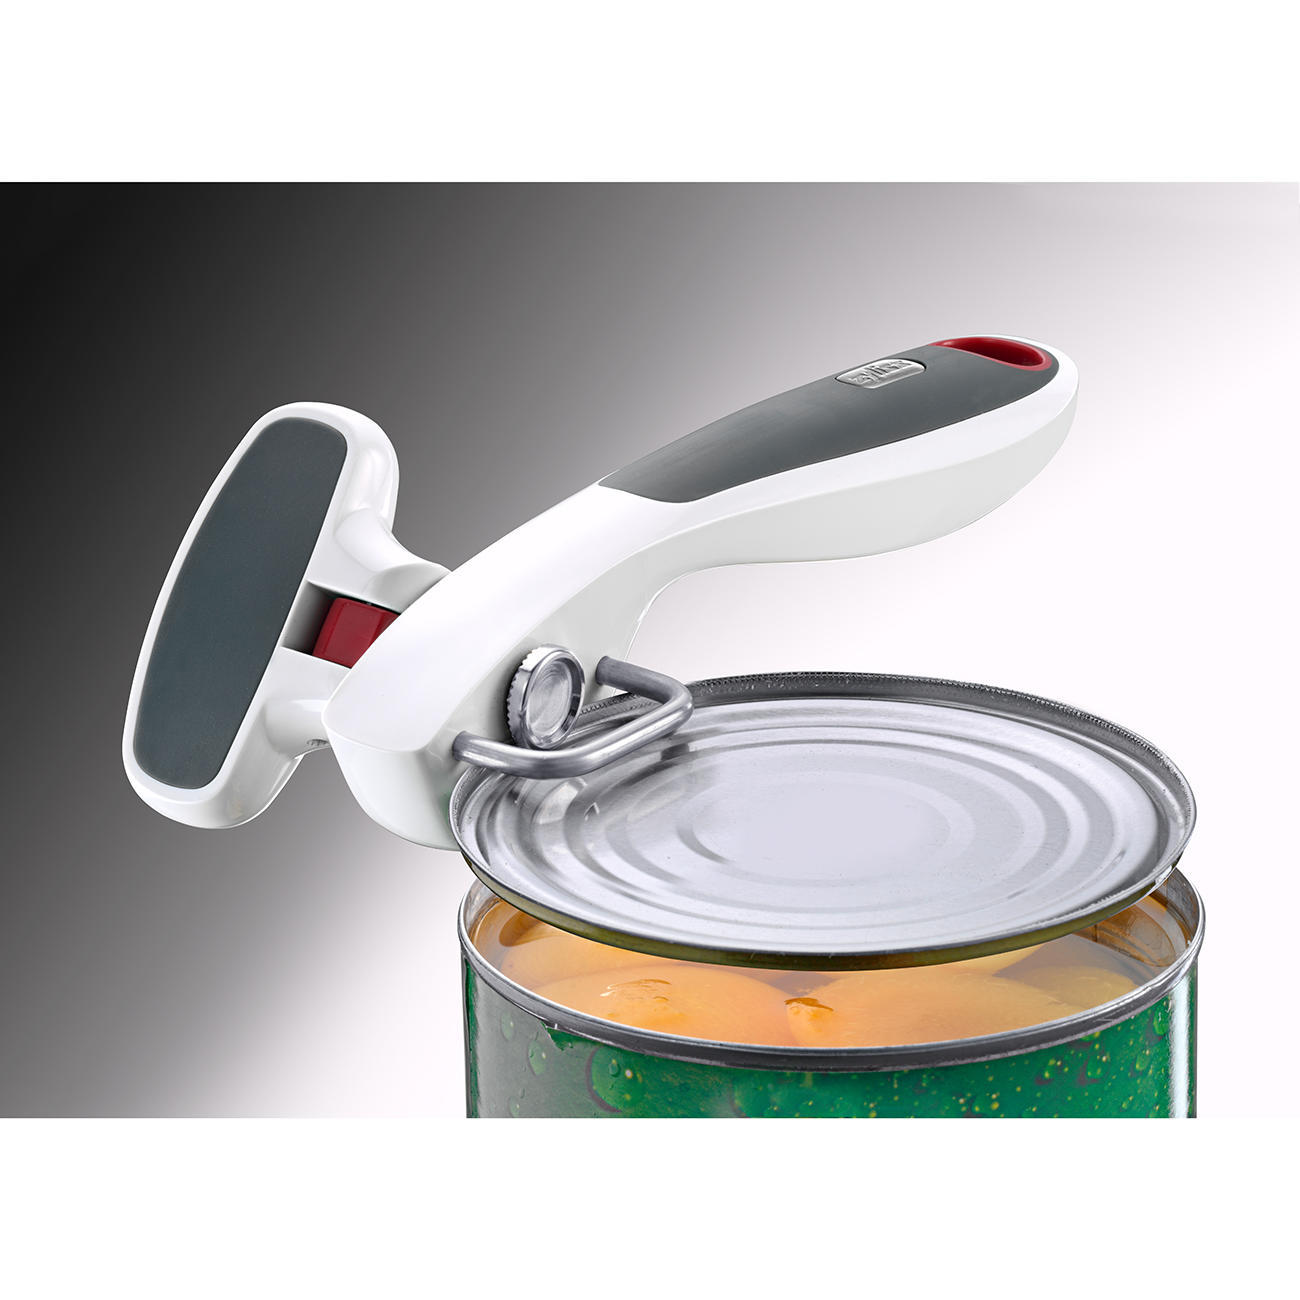 Shapely Safe Edge Can Opener Out Safe Edge Buy Safe Edge Can Opener Online Zyliss Can Opener Fix Zyliss Can Opener Came Apart houzz 01 Zyliss Can Opener